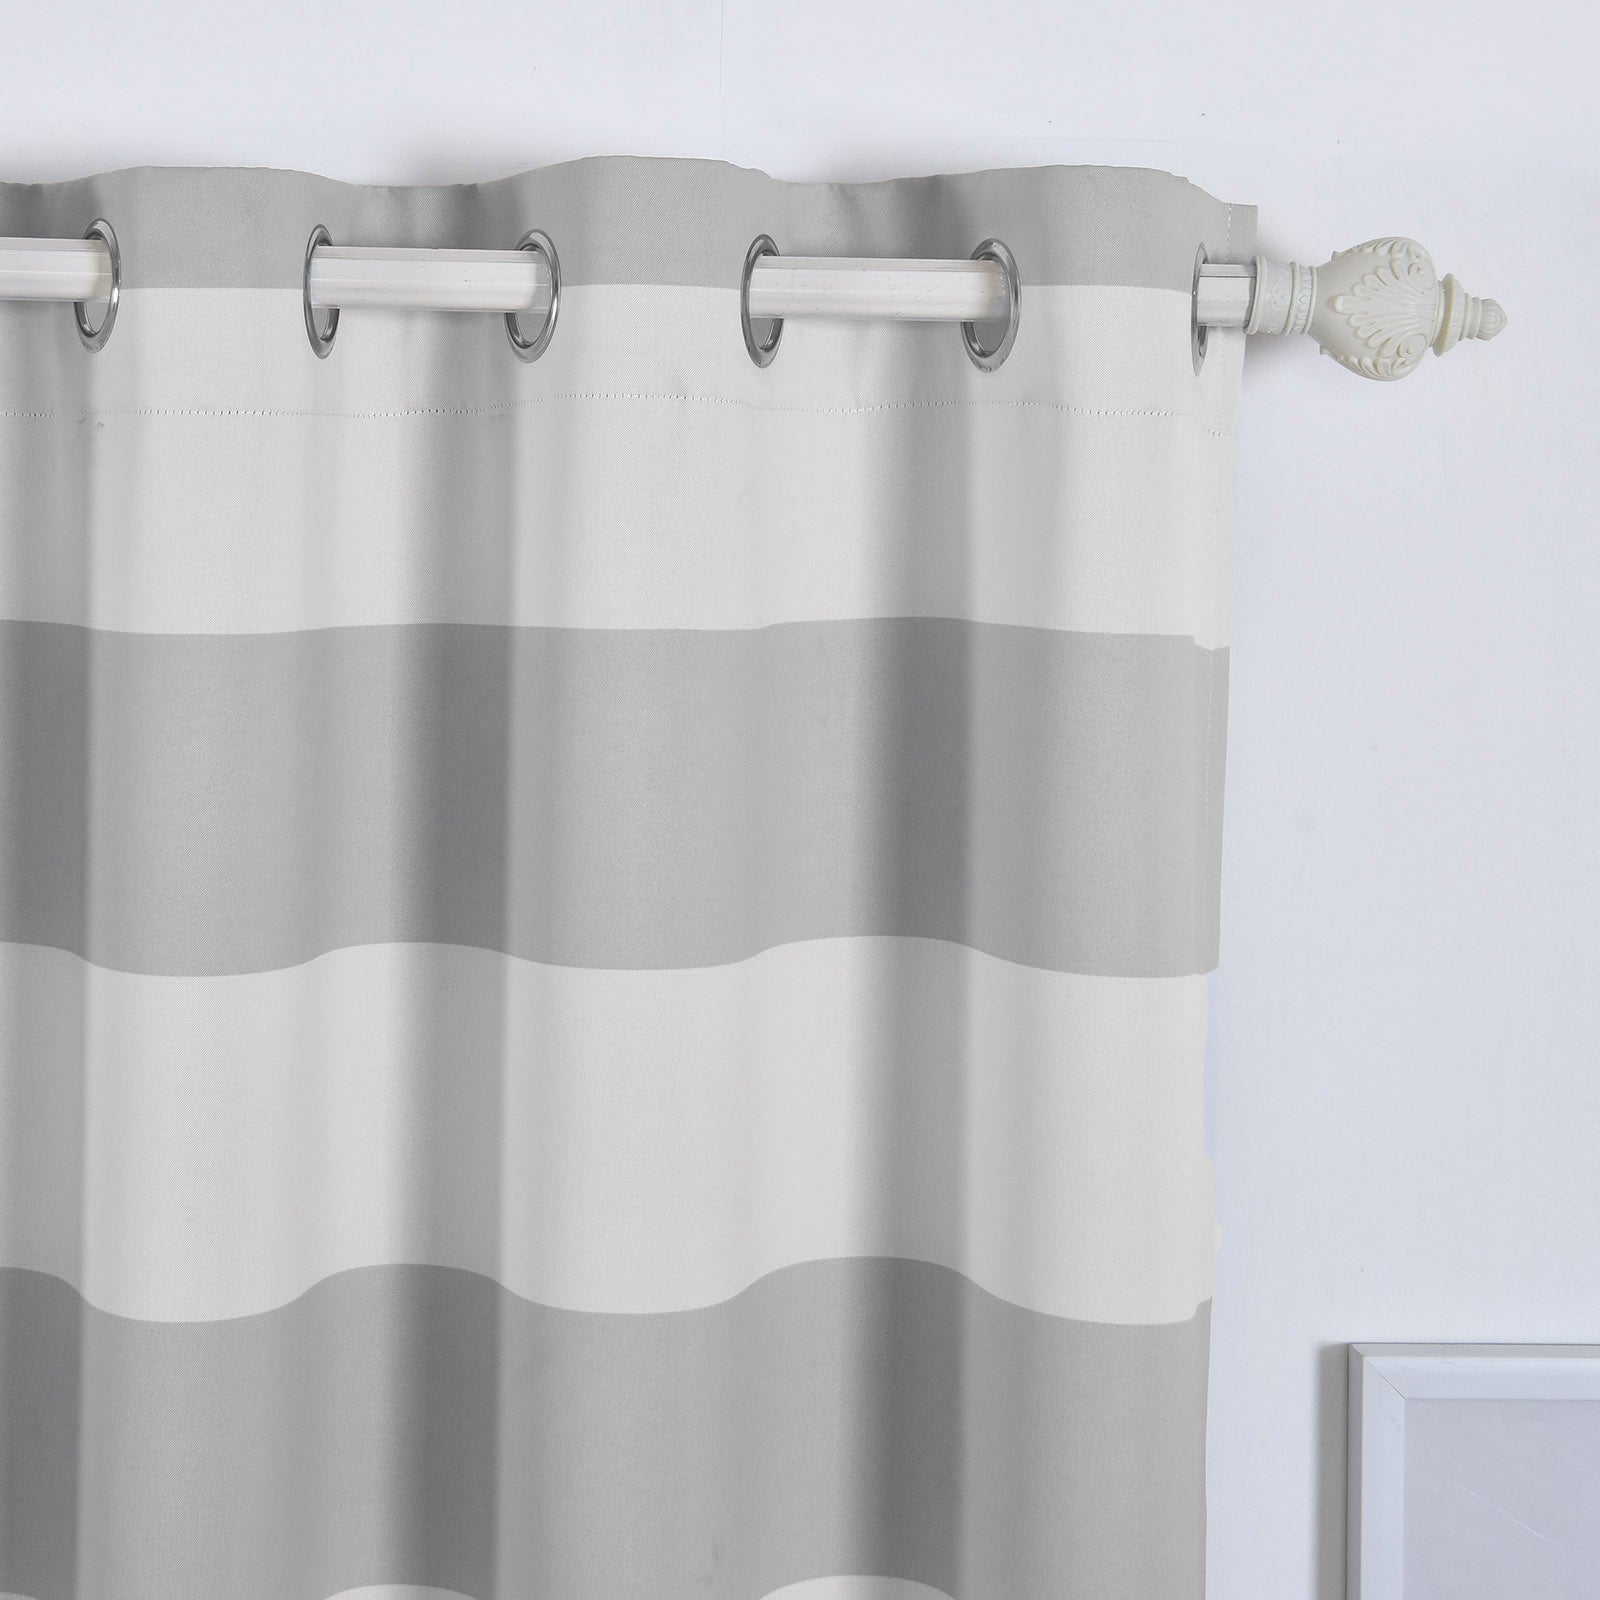 Blackout Curtains 52x108 White Silver Cabana Stripe Pack Of 2 Thermal Insulated With Chrome Grommet Window Treatment Panels